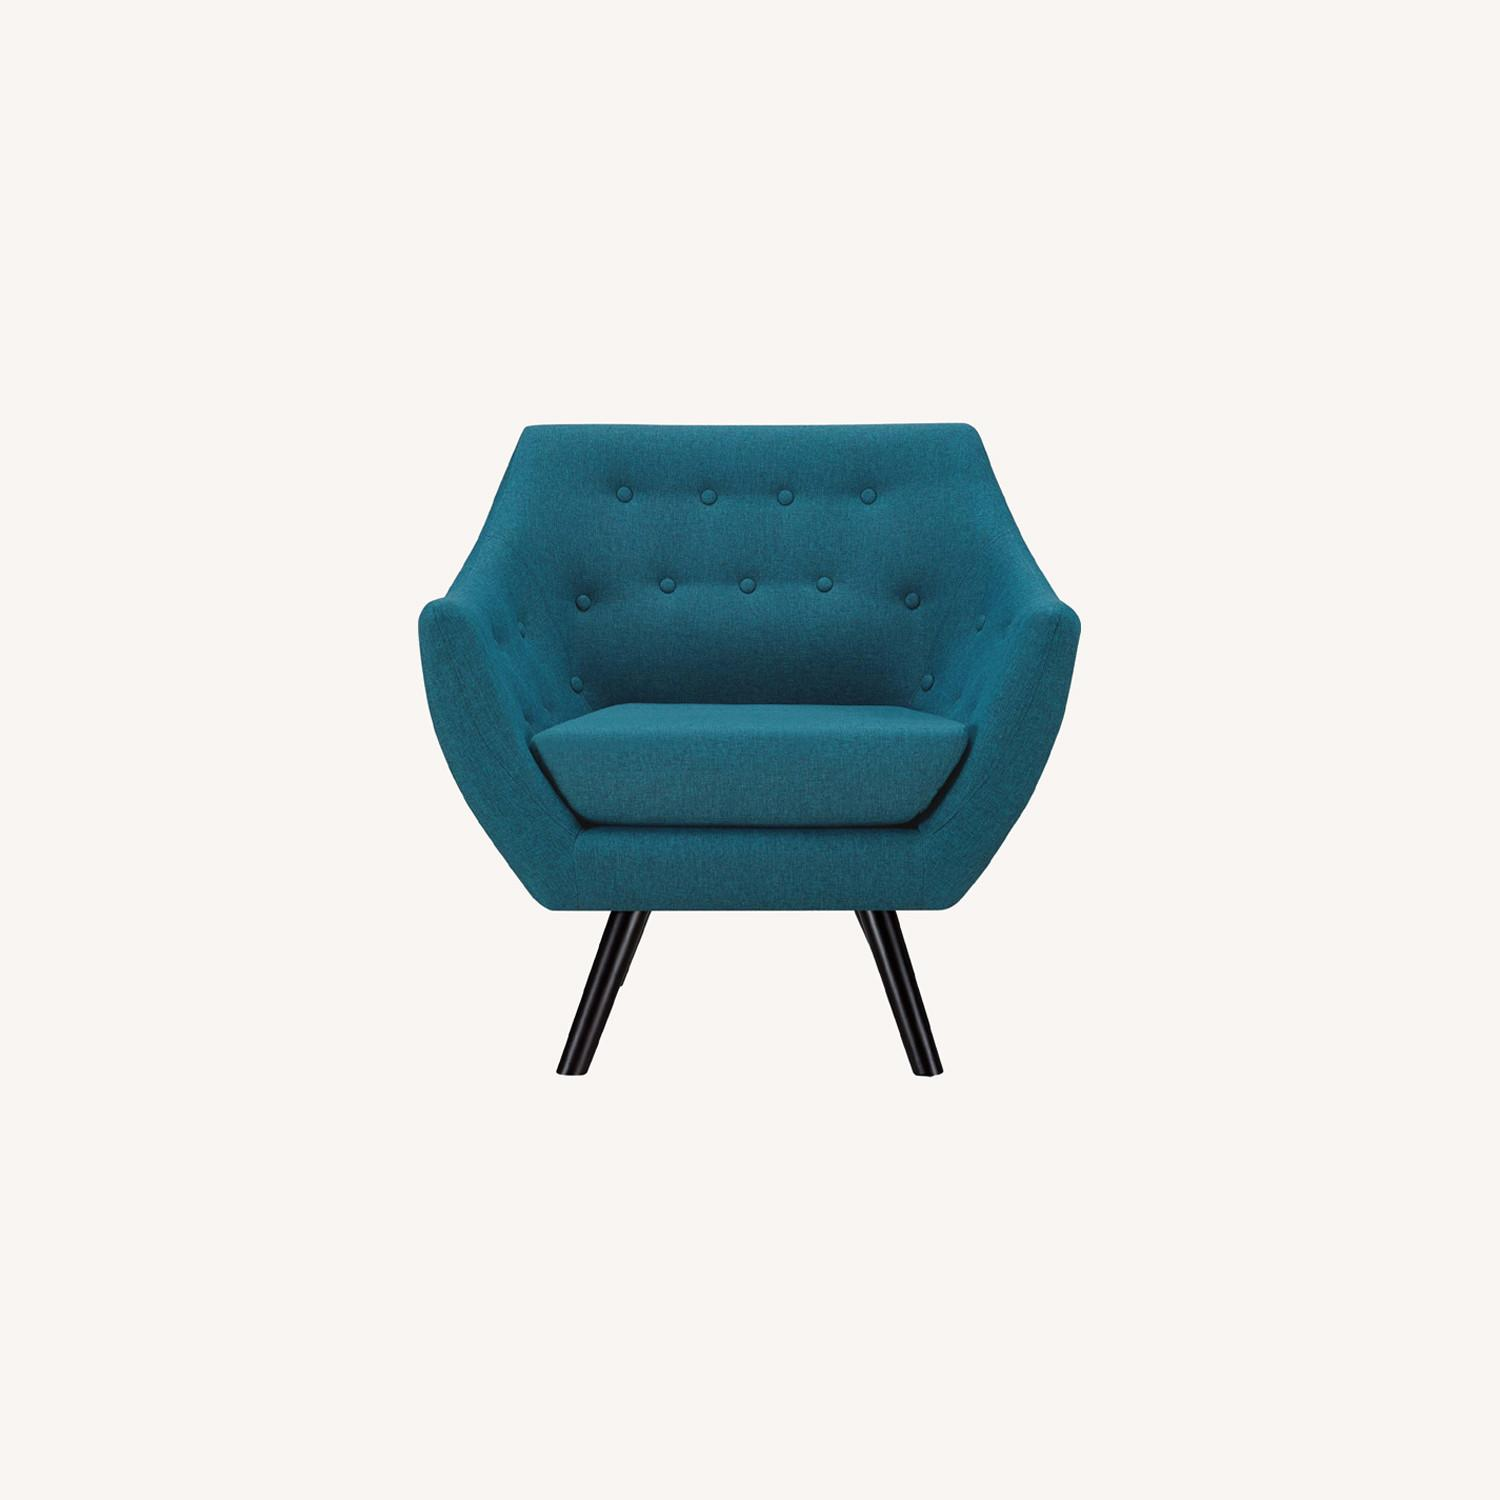 Armchair In Teal Fabric W/ Tufted Buttons - image-6